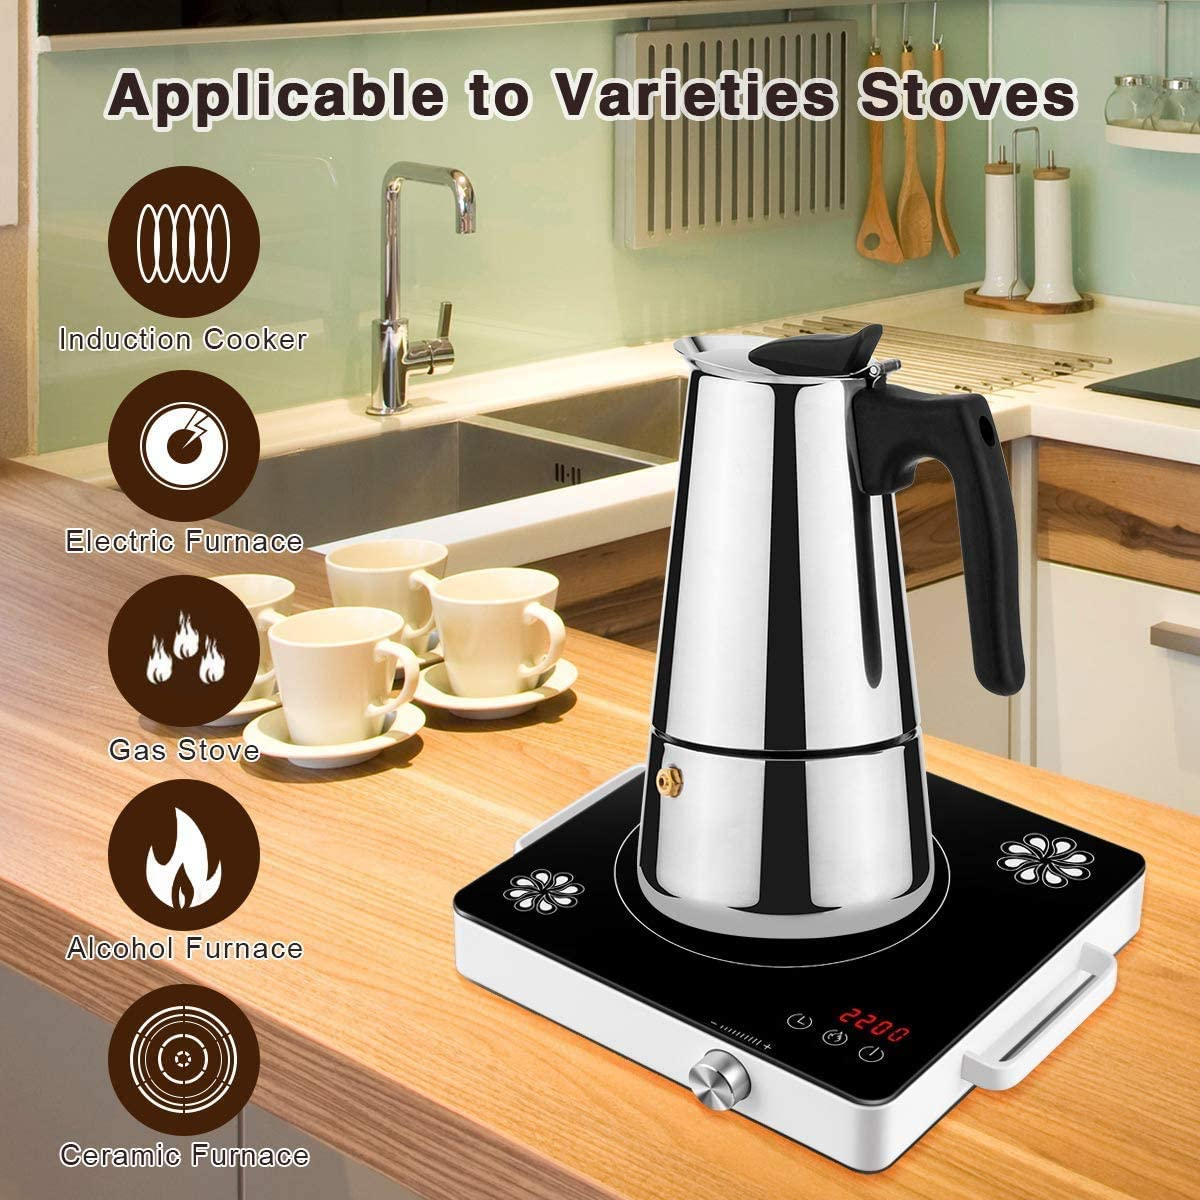 Stovetop Espresso Maker Percolator Coffee Pot Stainless Steel Moka Pot Home or Office Espresso Coffee Machines 4 Models for 1-9 People